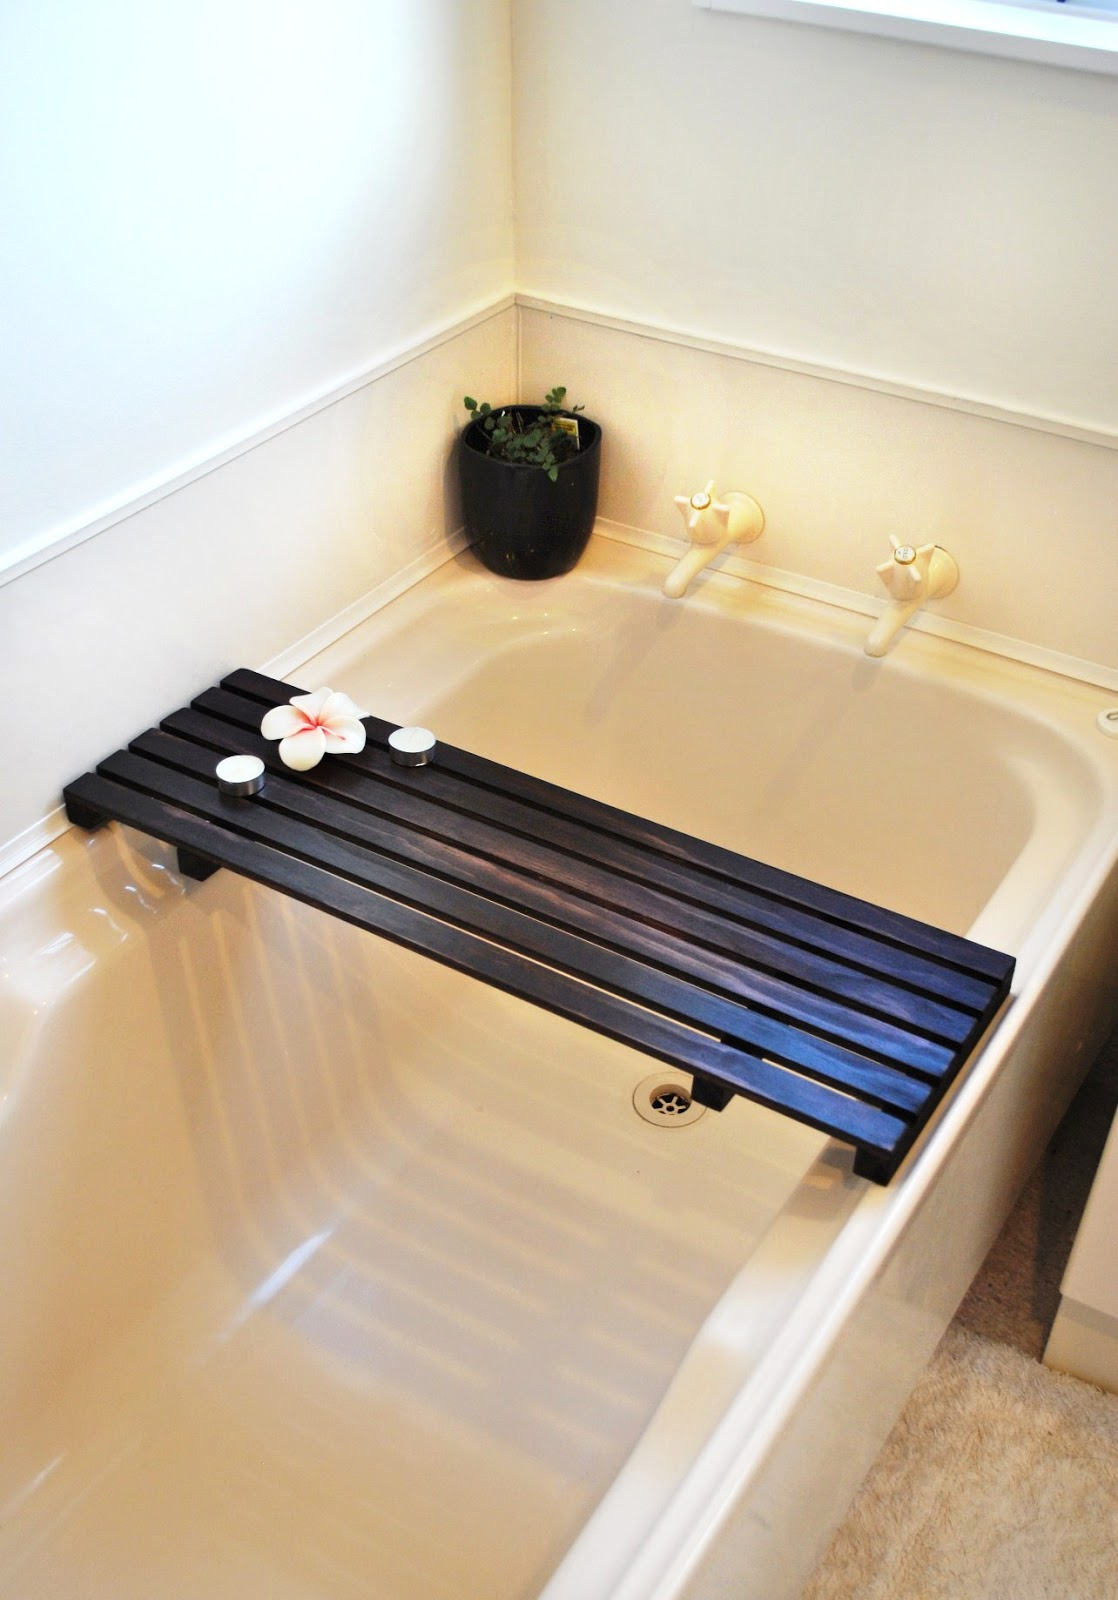 DIY Kiwi: How to build a timber bath caddy